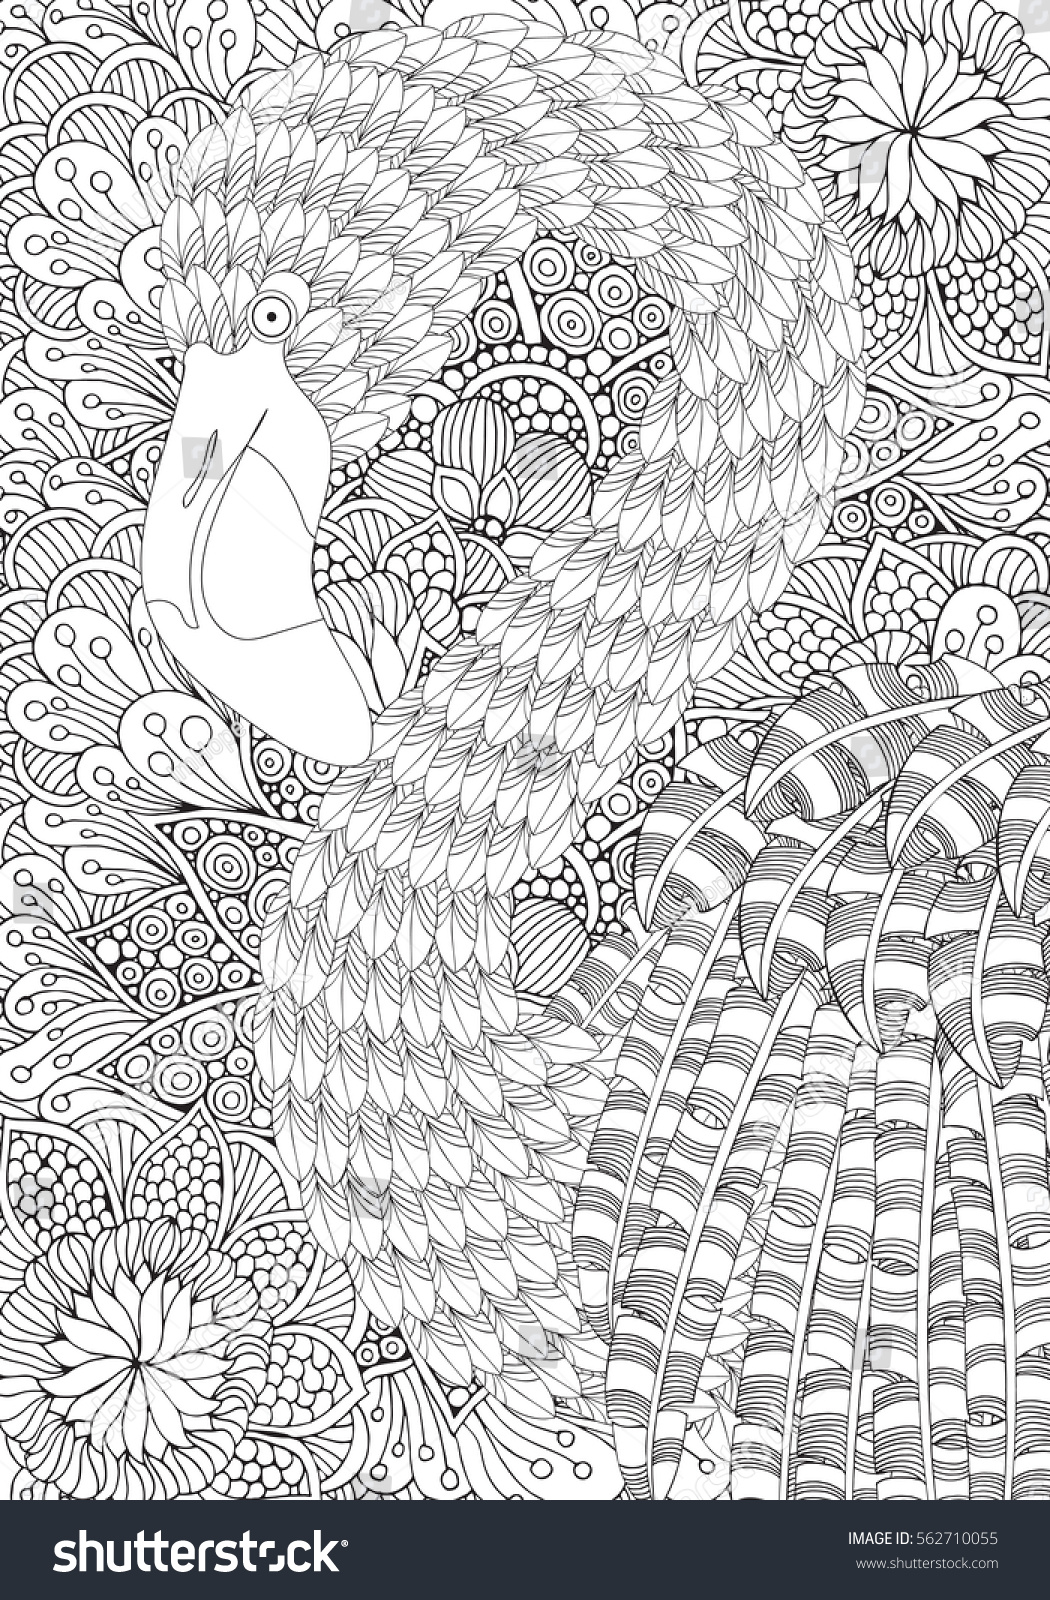 Fantastical Bird Coloring Book A4 Size Amazing Flamingo With Feathers And Patterns Plumage